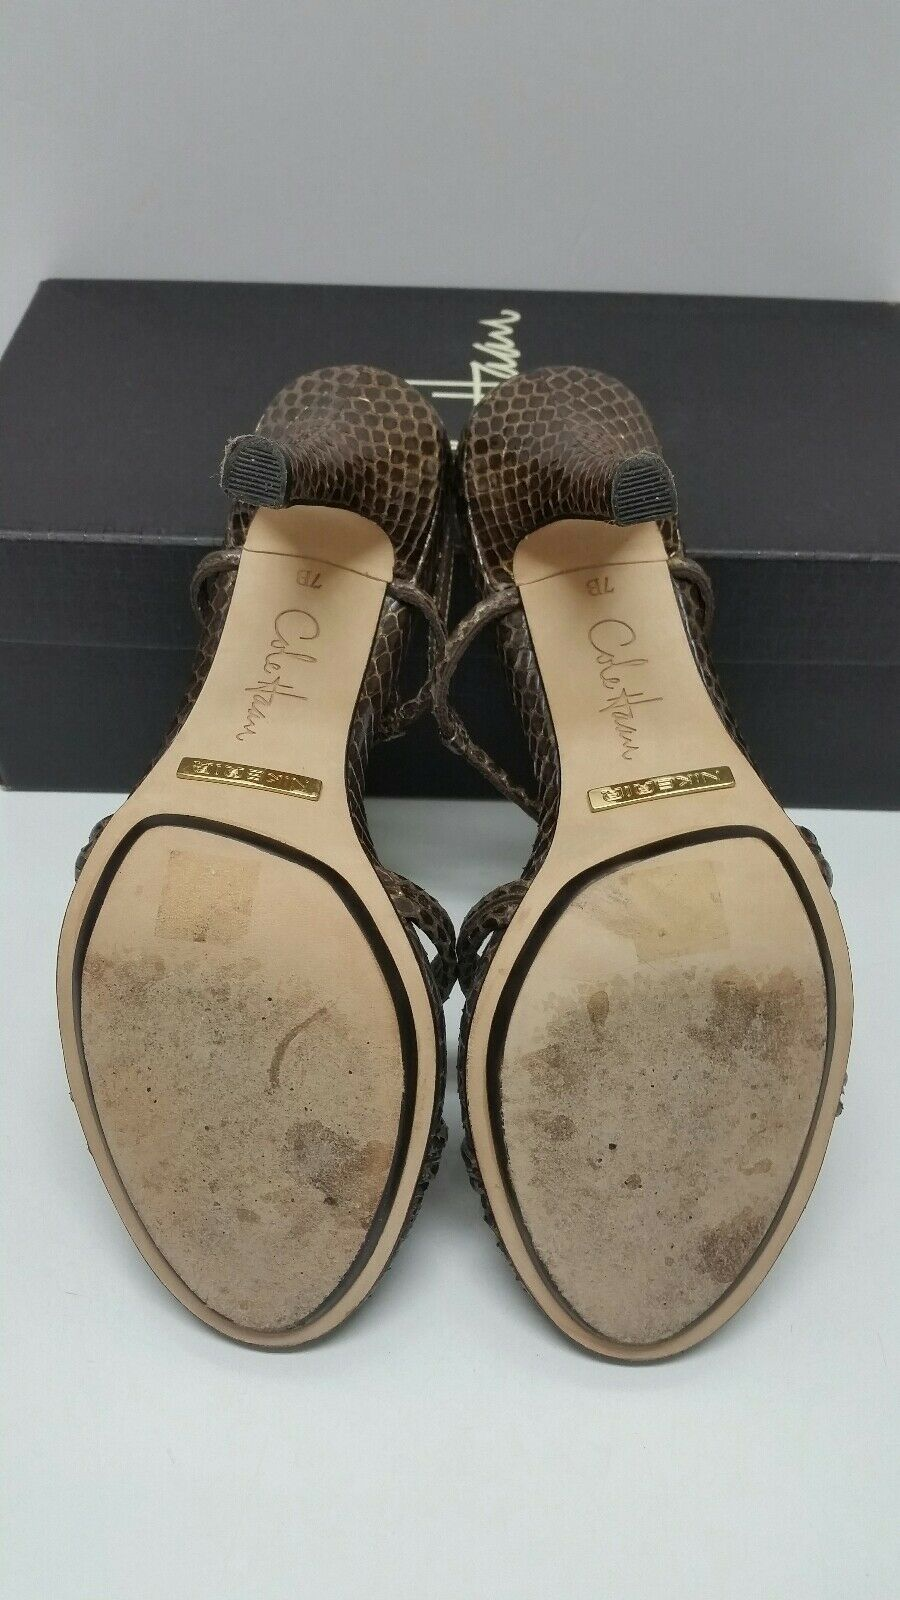 COLE HAAN SARI AIR MAHOGANY SNAKE LEATHER LEATHER LEATHER SIZE 7 HEELS SANDAL in BOX  DR 011c3e